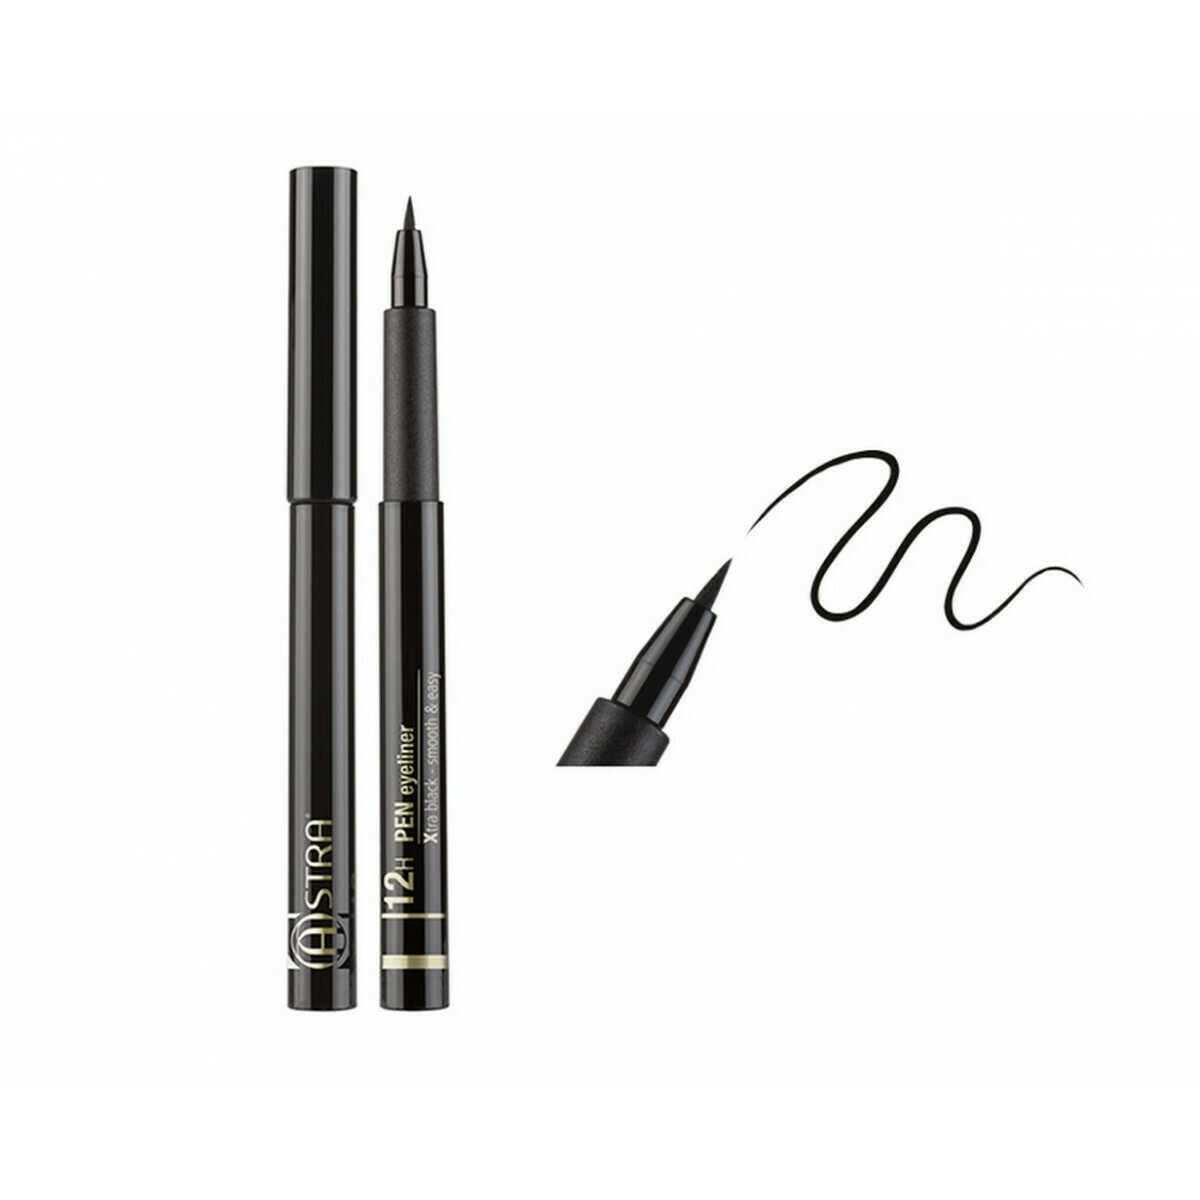 Eyeliner feutre Xtra black 12h - 3ml Astra Make-Up